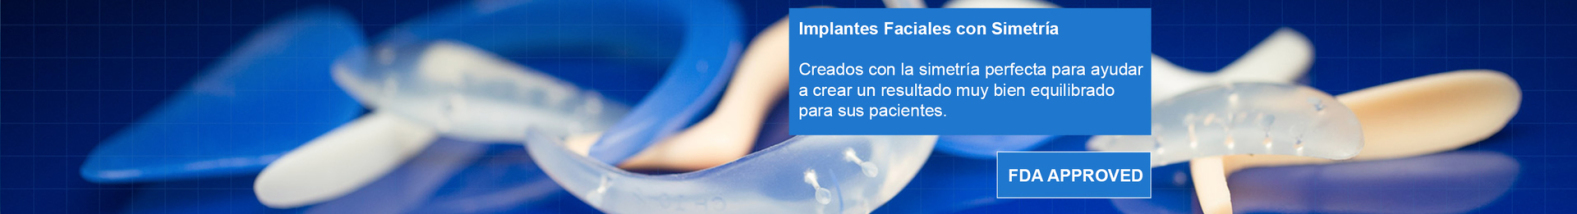 Implantes hanson Medical Ecuador